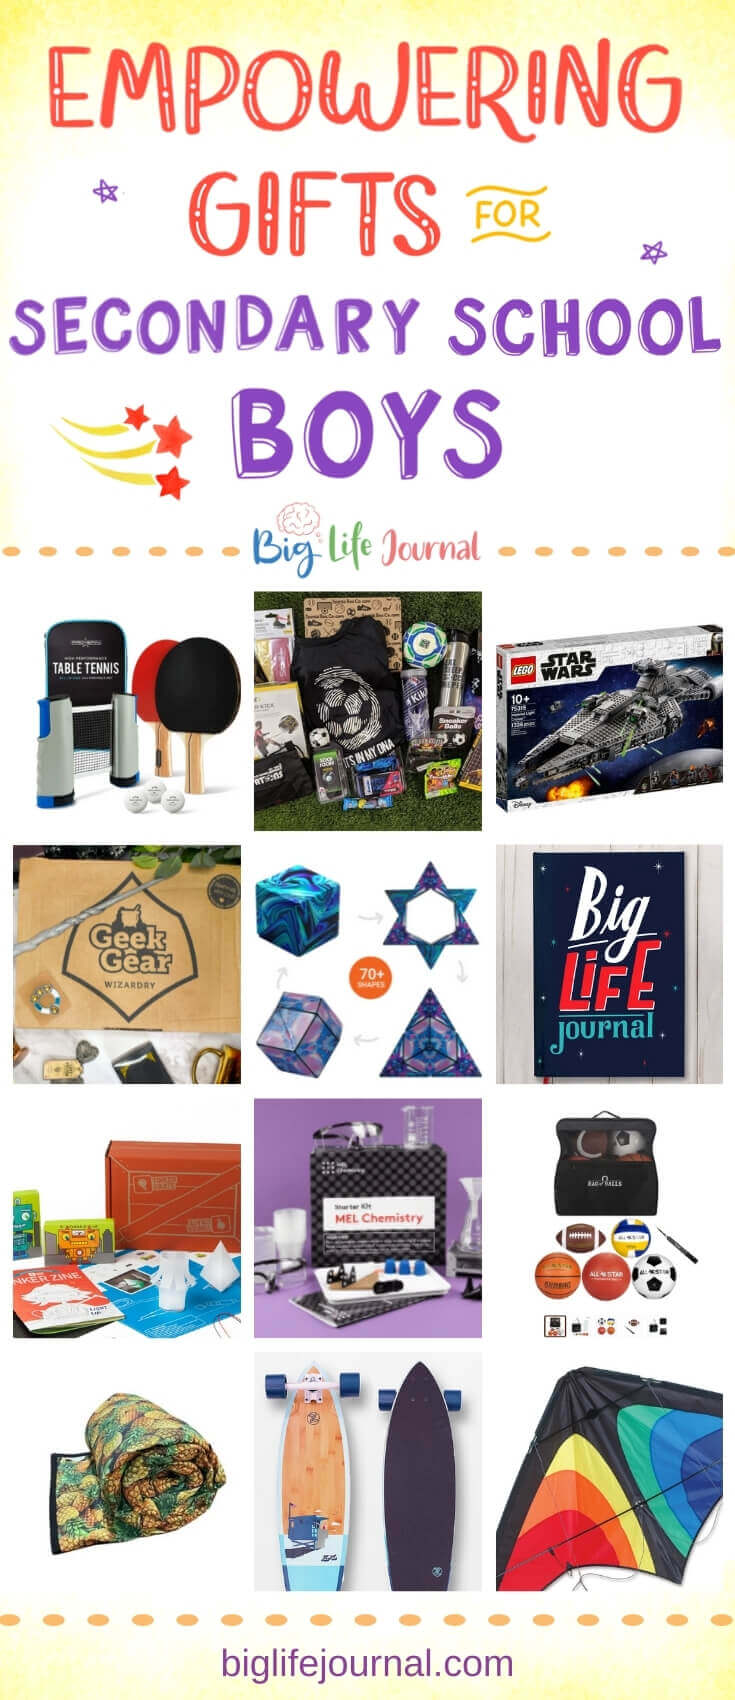 15 Gifts for Secondary School Boys